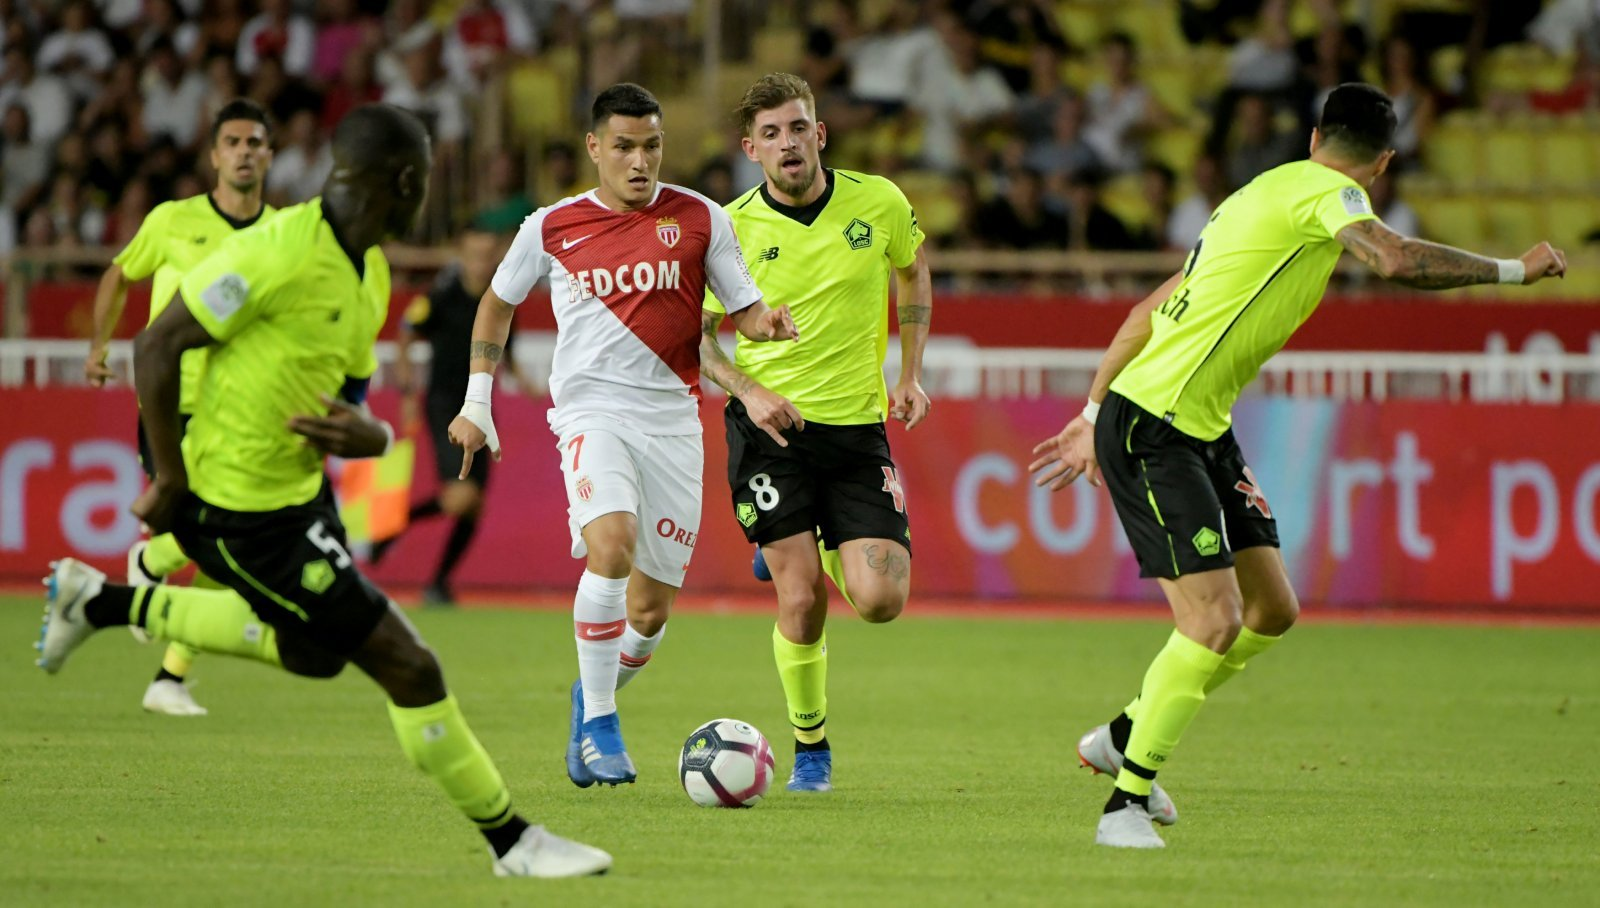 Rony Lopes could fit nicely into Tottenham's exciting side